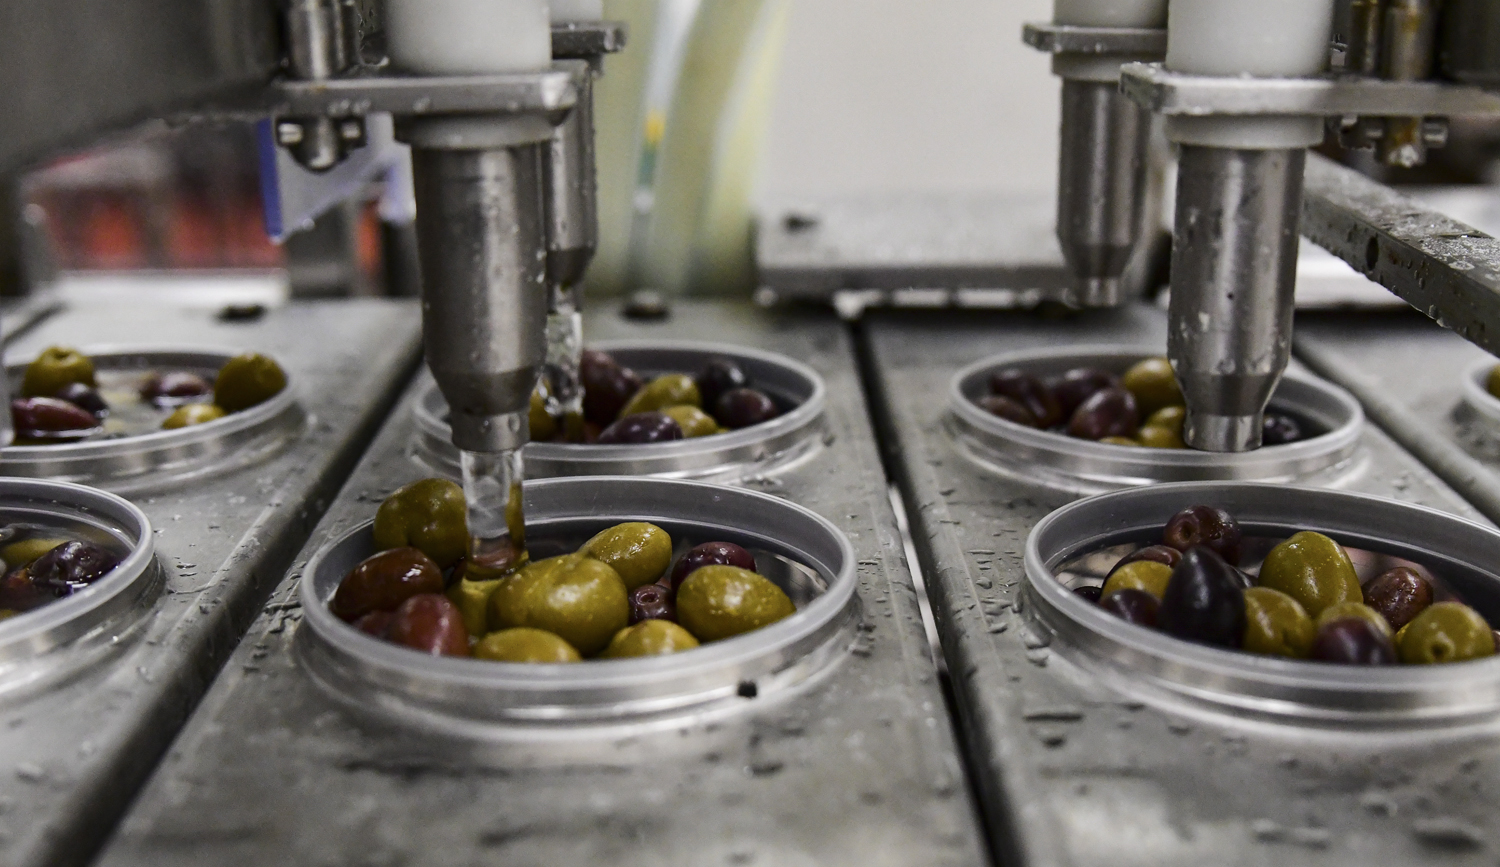 Olives are cleansed with water as they move through the assembly line at DeLallo's olive processing facility.